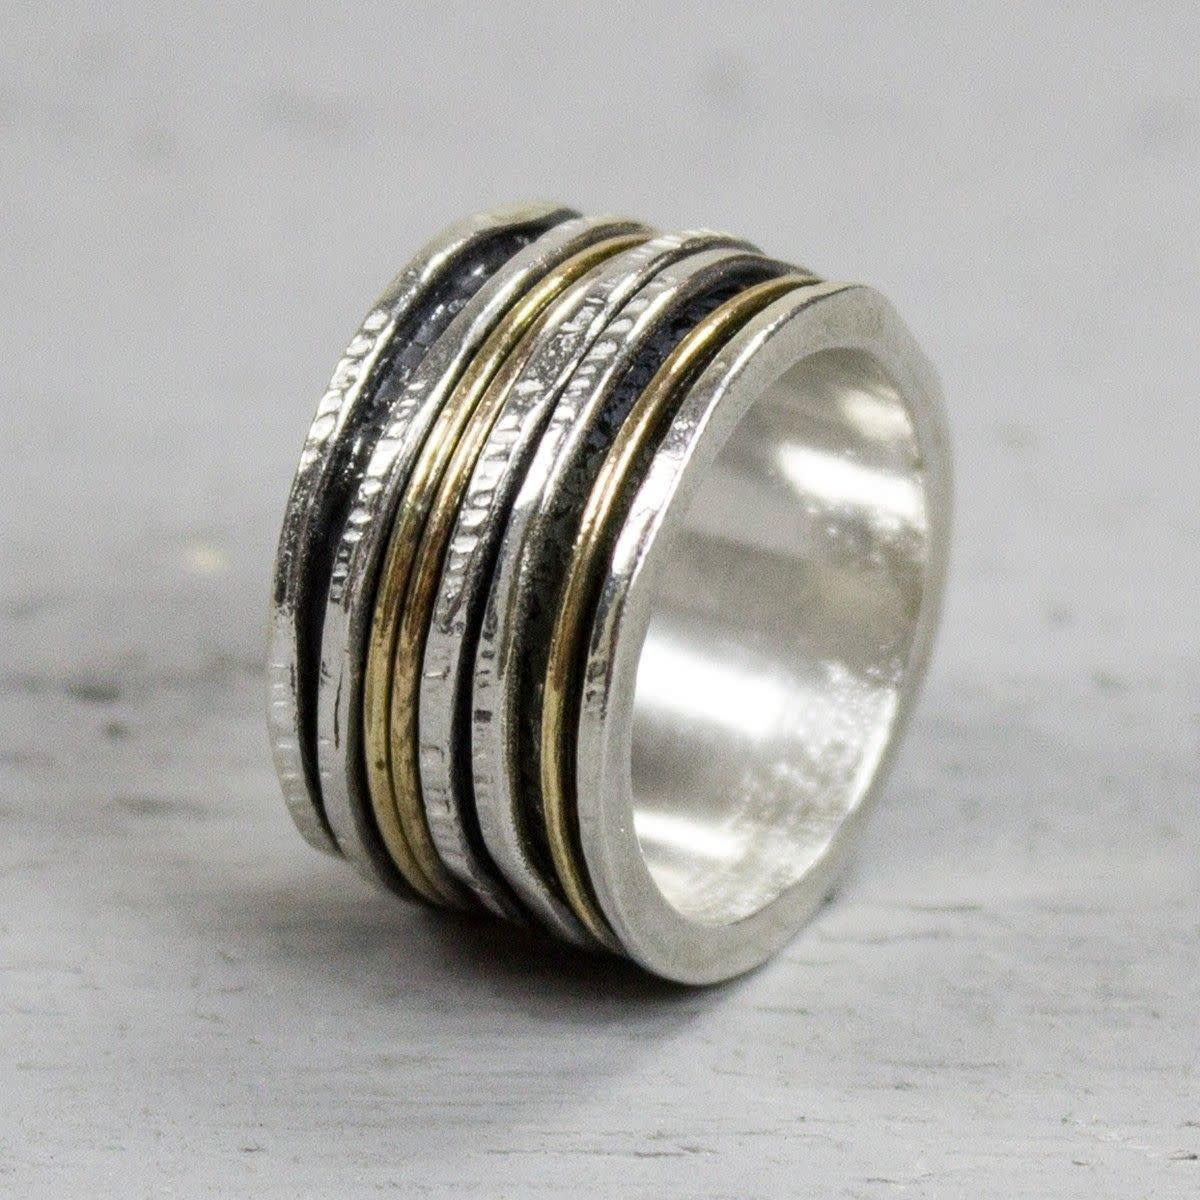 Ring Silver + Gold Filled 19436-3